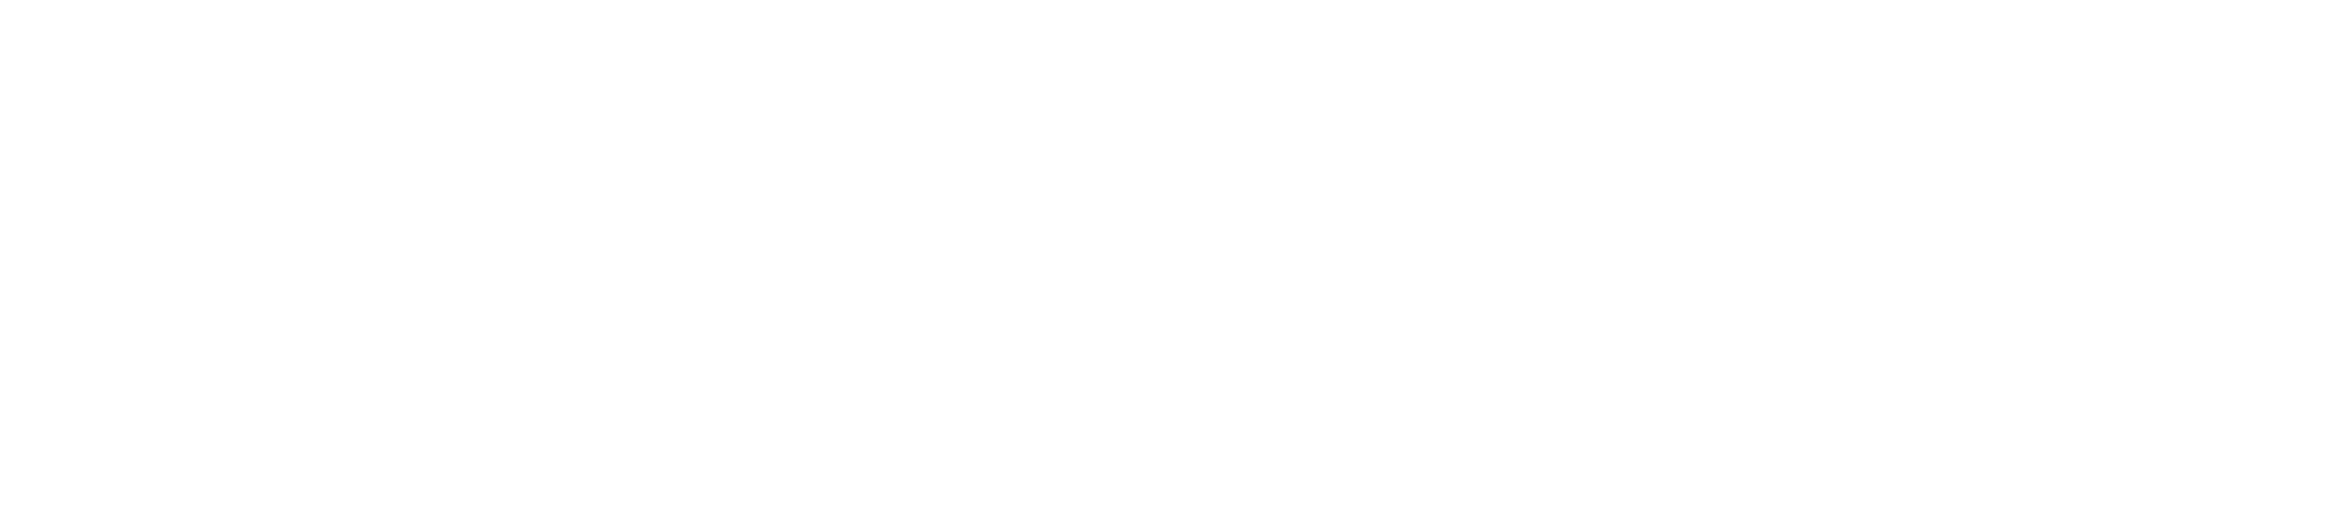 The Arcadist Logo Bold White